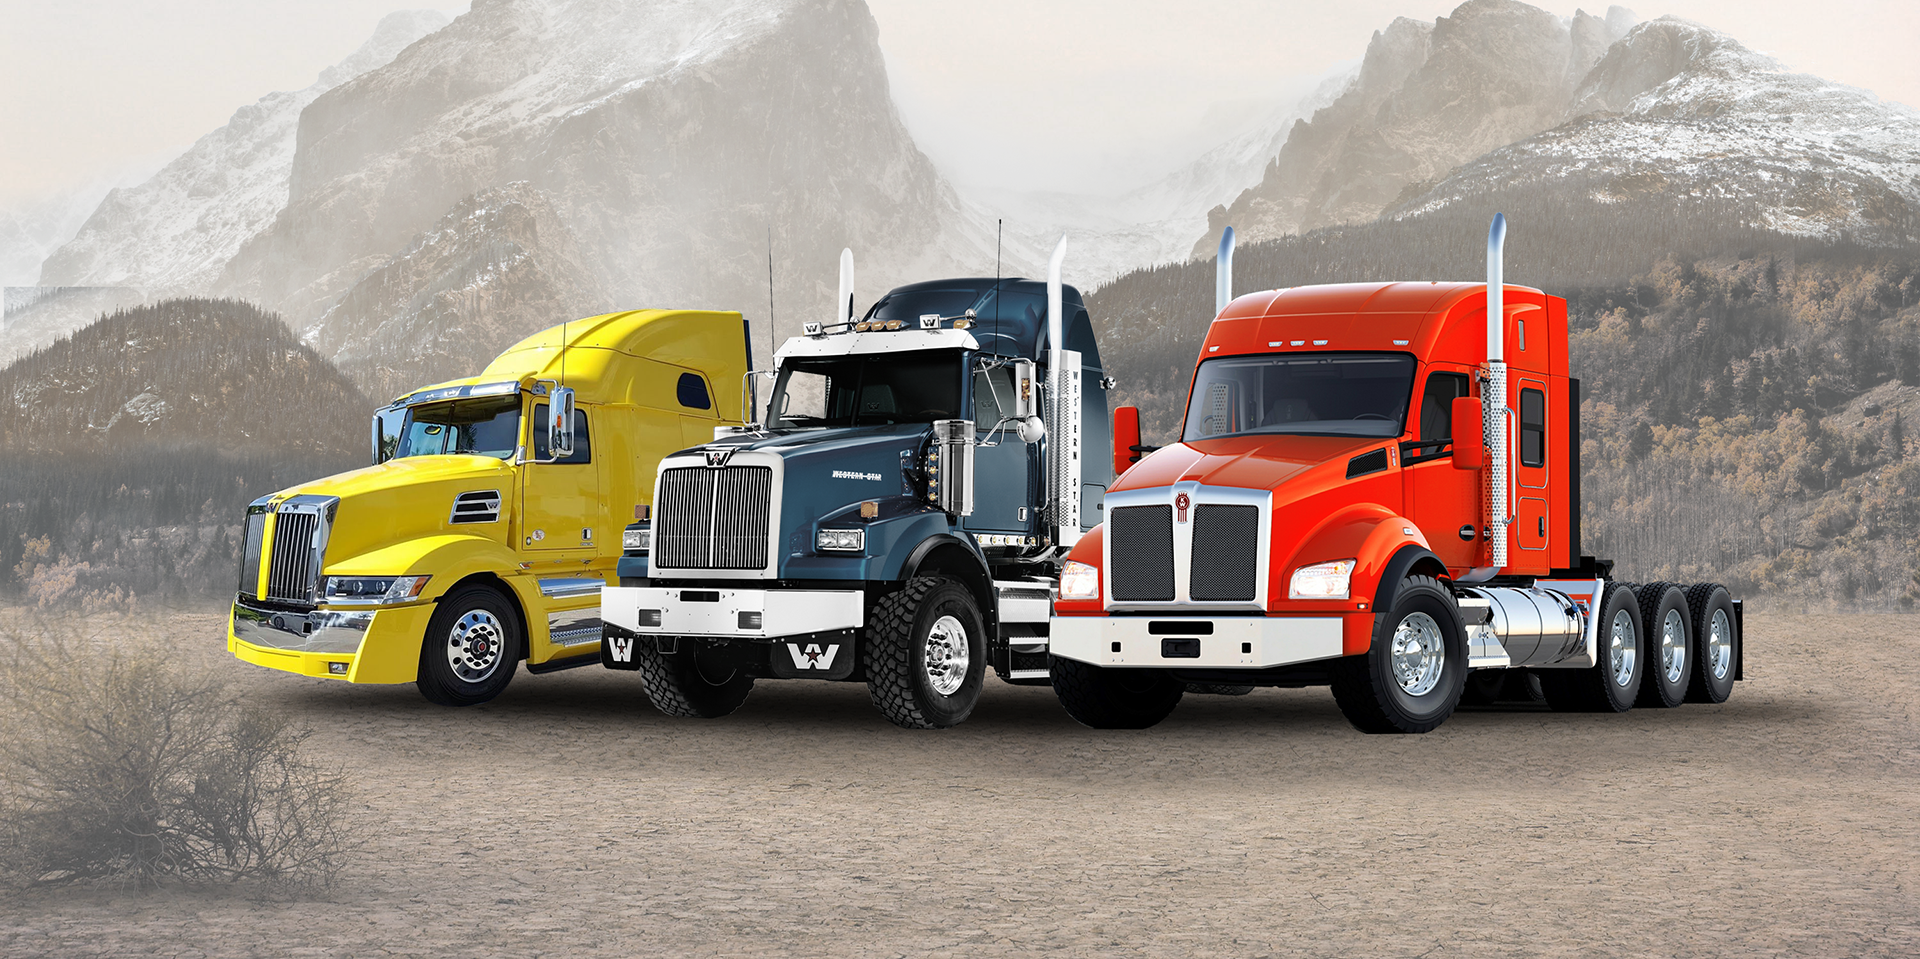 What Are The Responsibilities And Requirements For a Truck Driver Job?